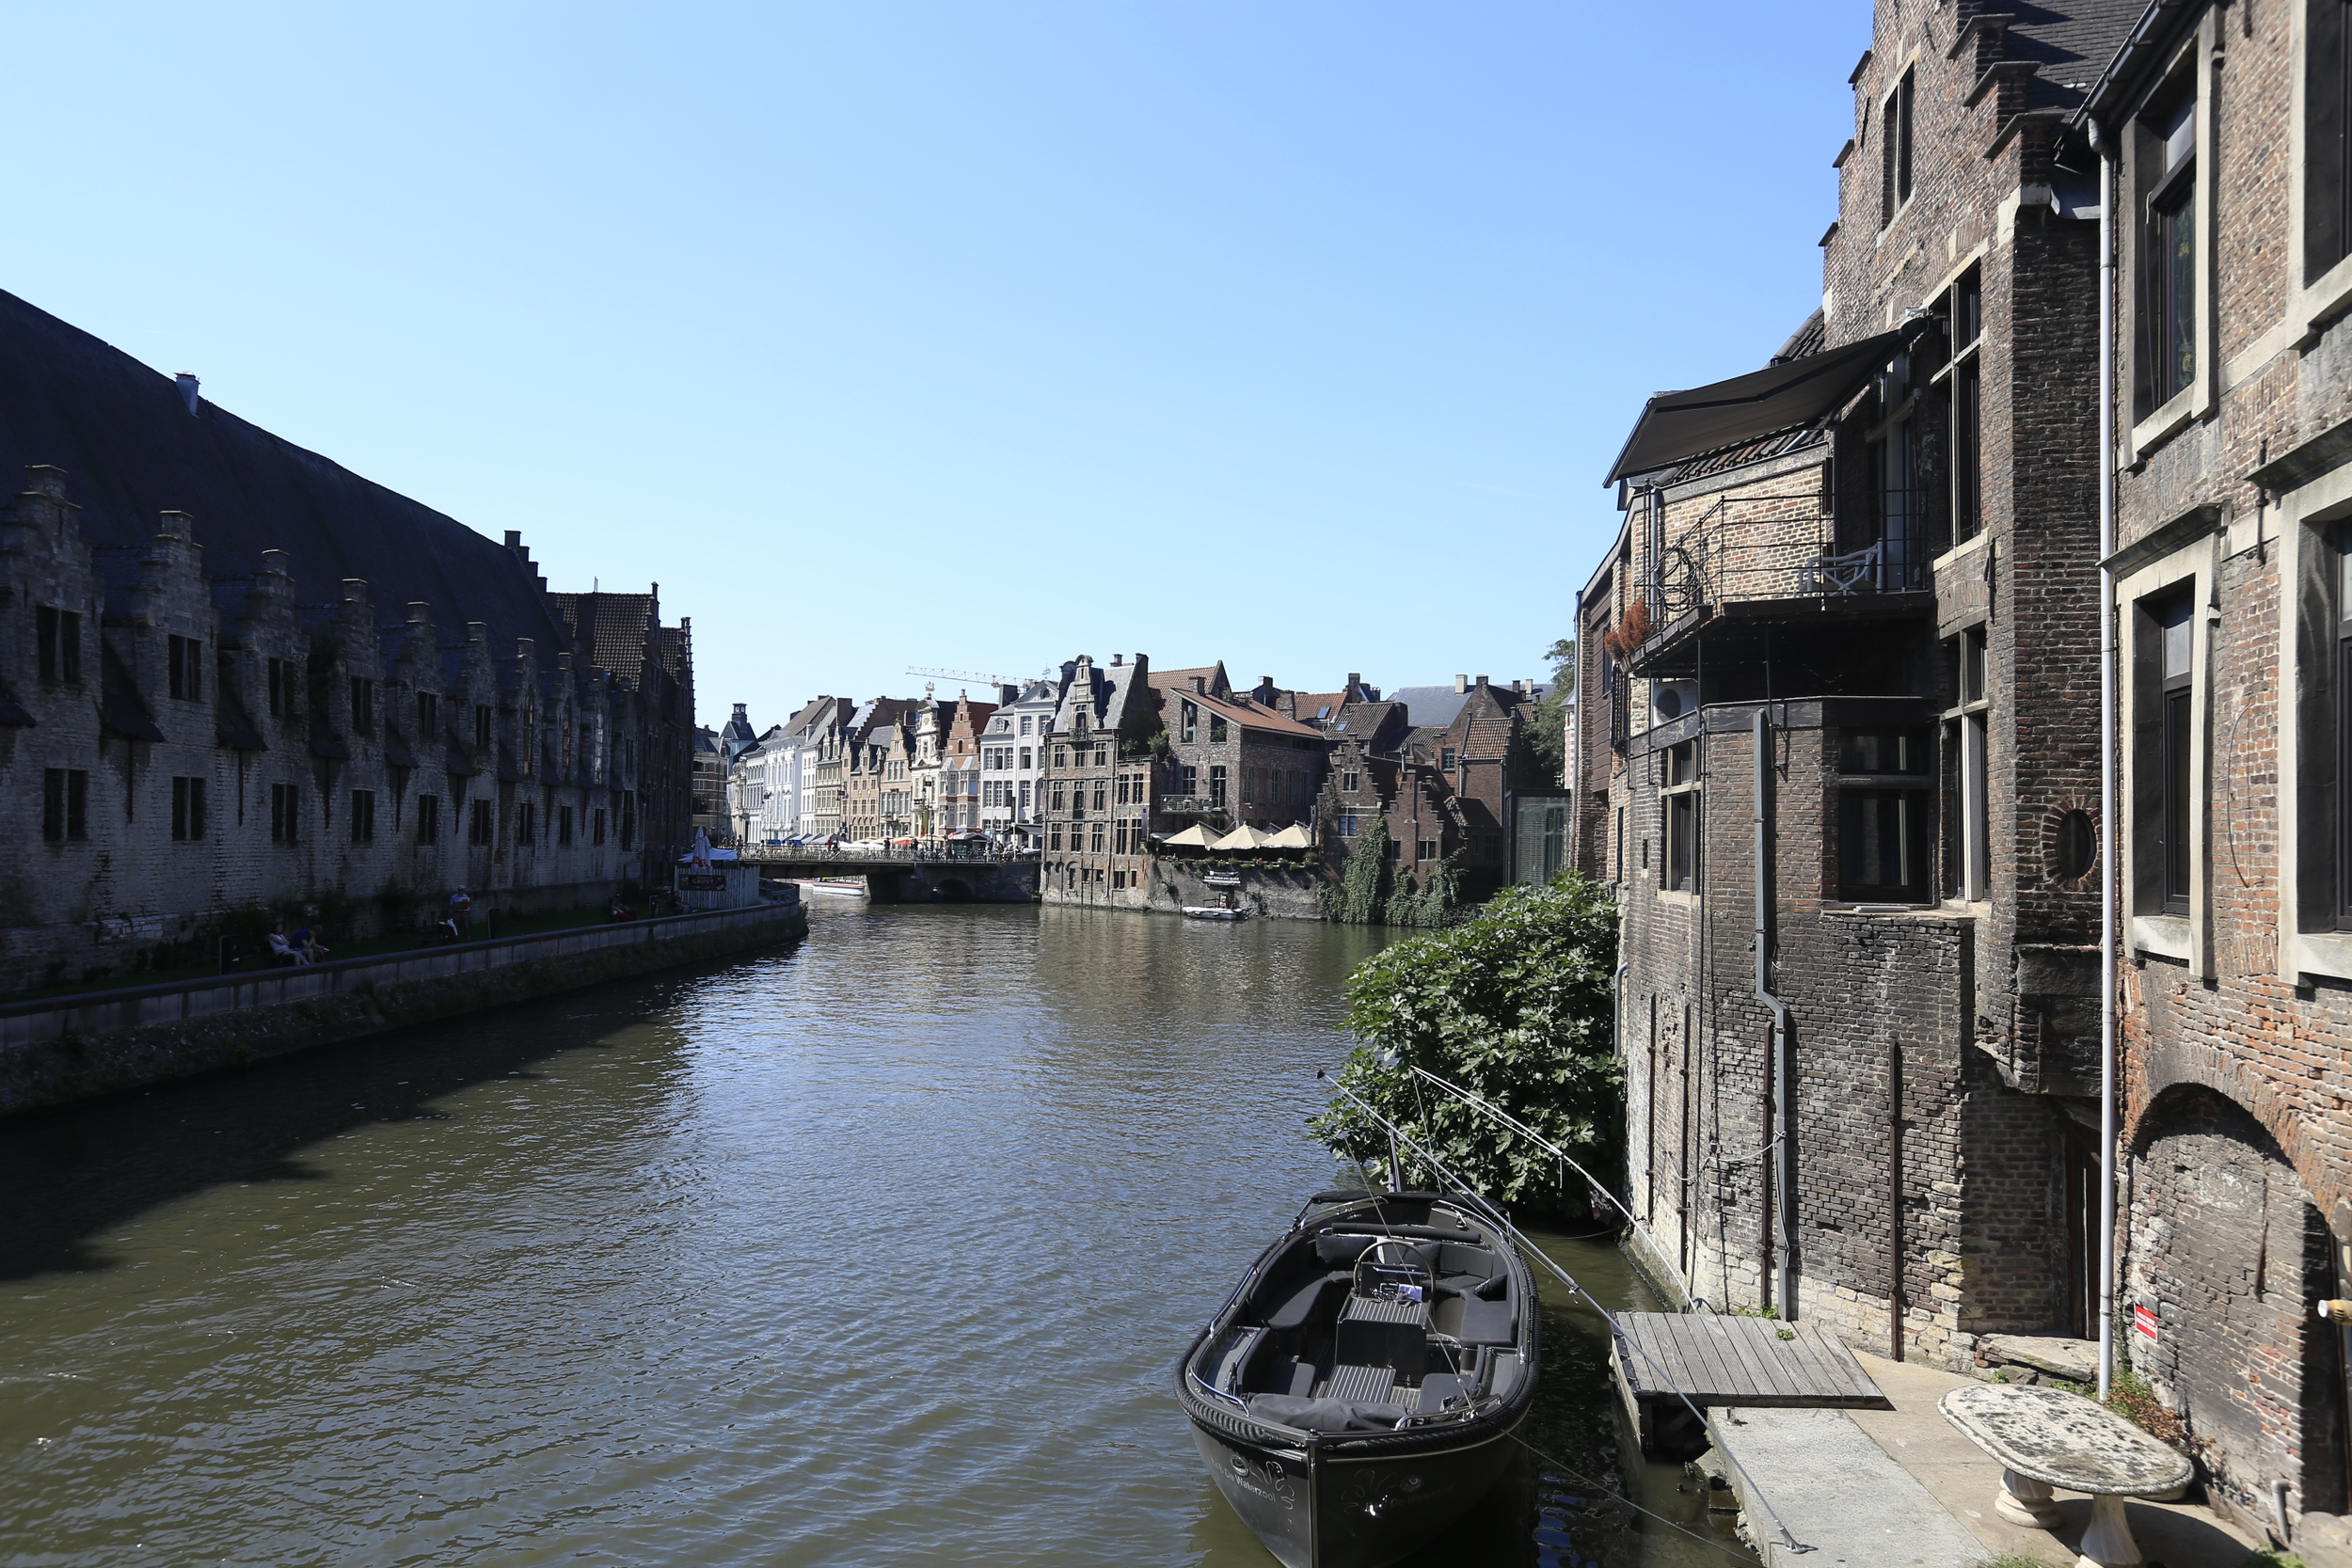 ghent, bikepacking, cycle touring, bicycle touring, bikepacking blog, cycling blog, bicycle touring apocalypse, canon, photo, photography blog, landscape photography